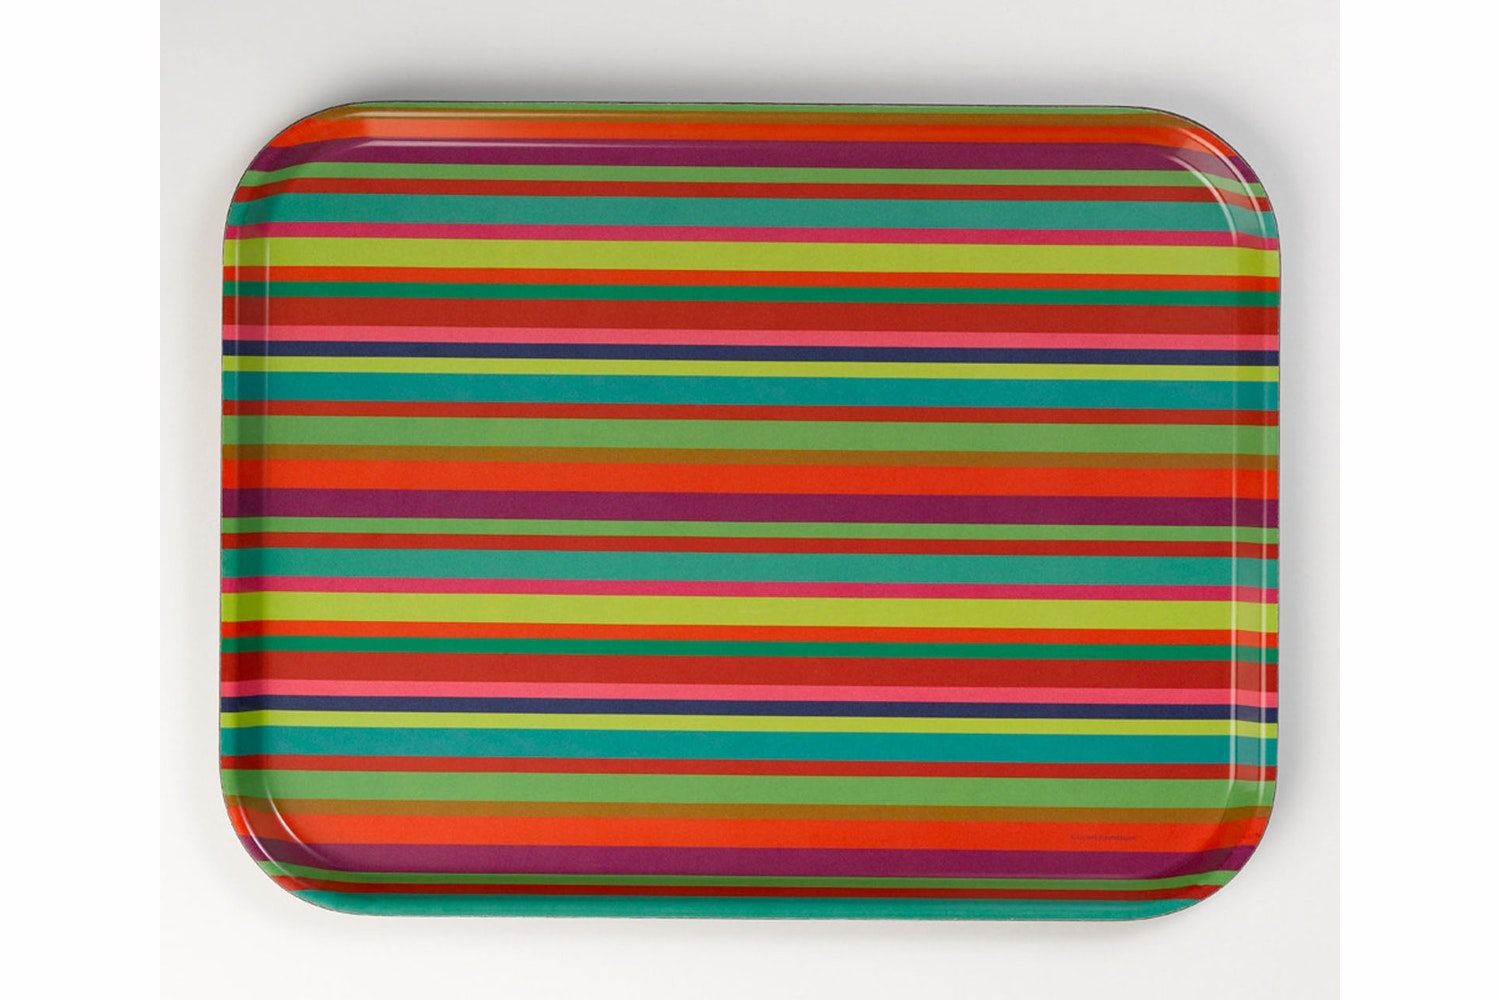 Classic Trays by Charles & Ray Eames, Alexander Girard and George Nelson for Vitra